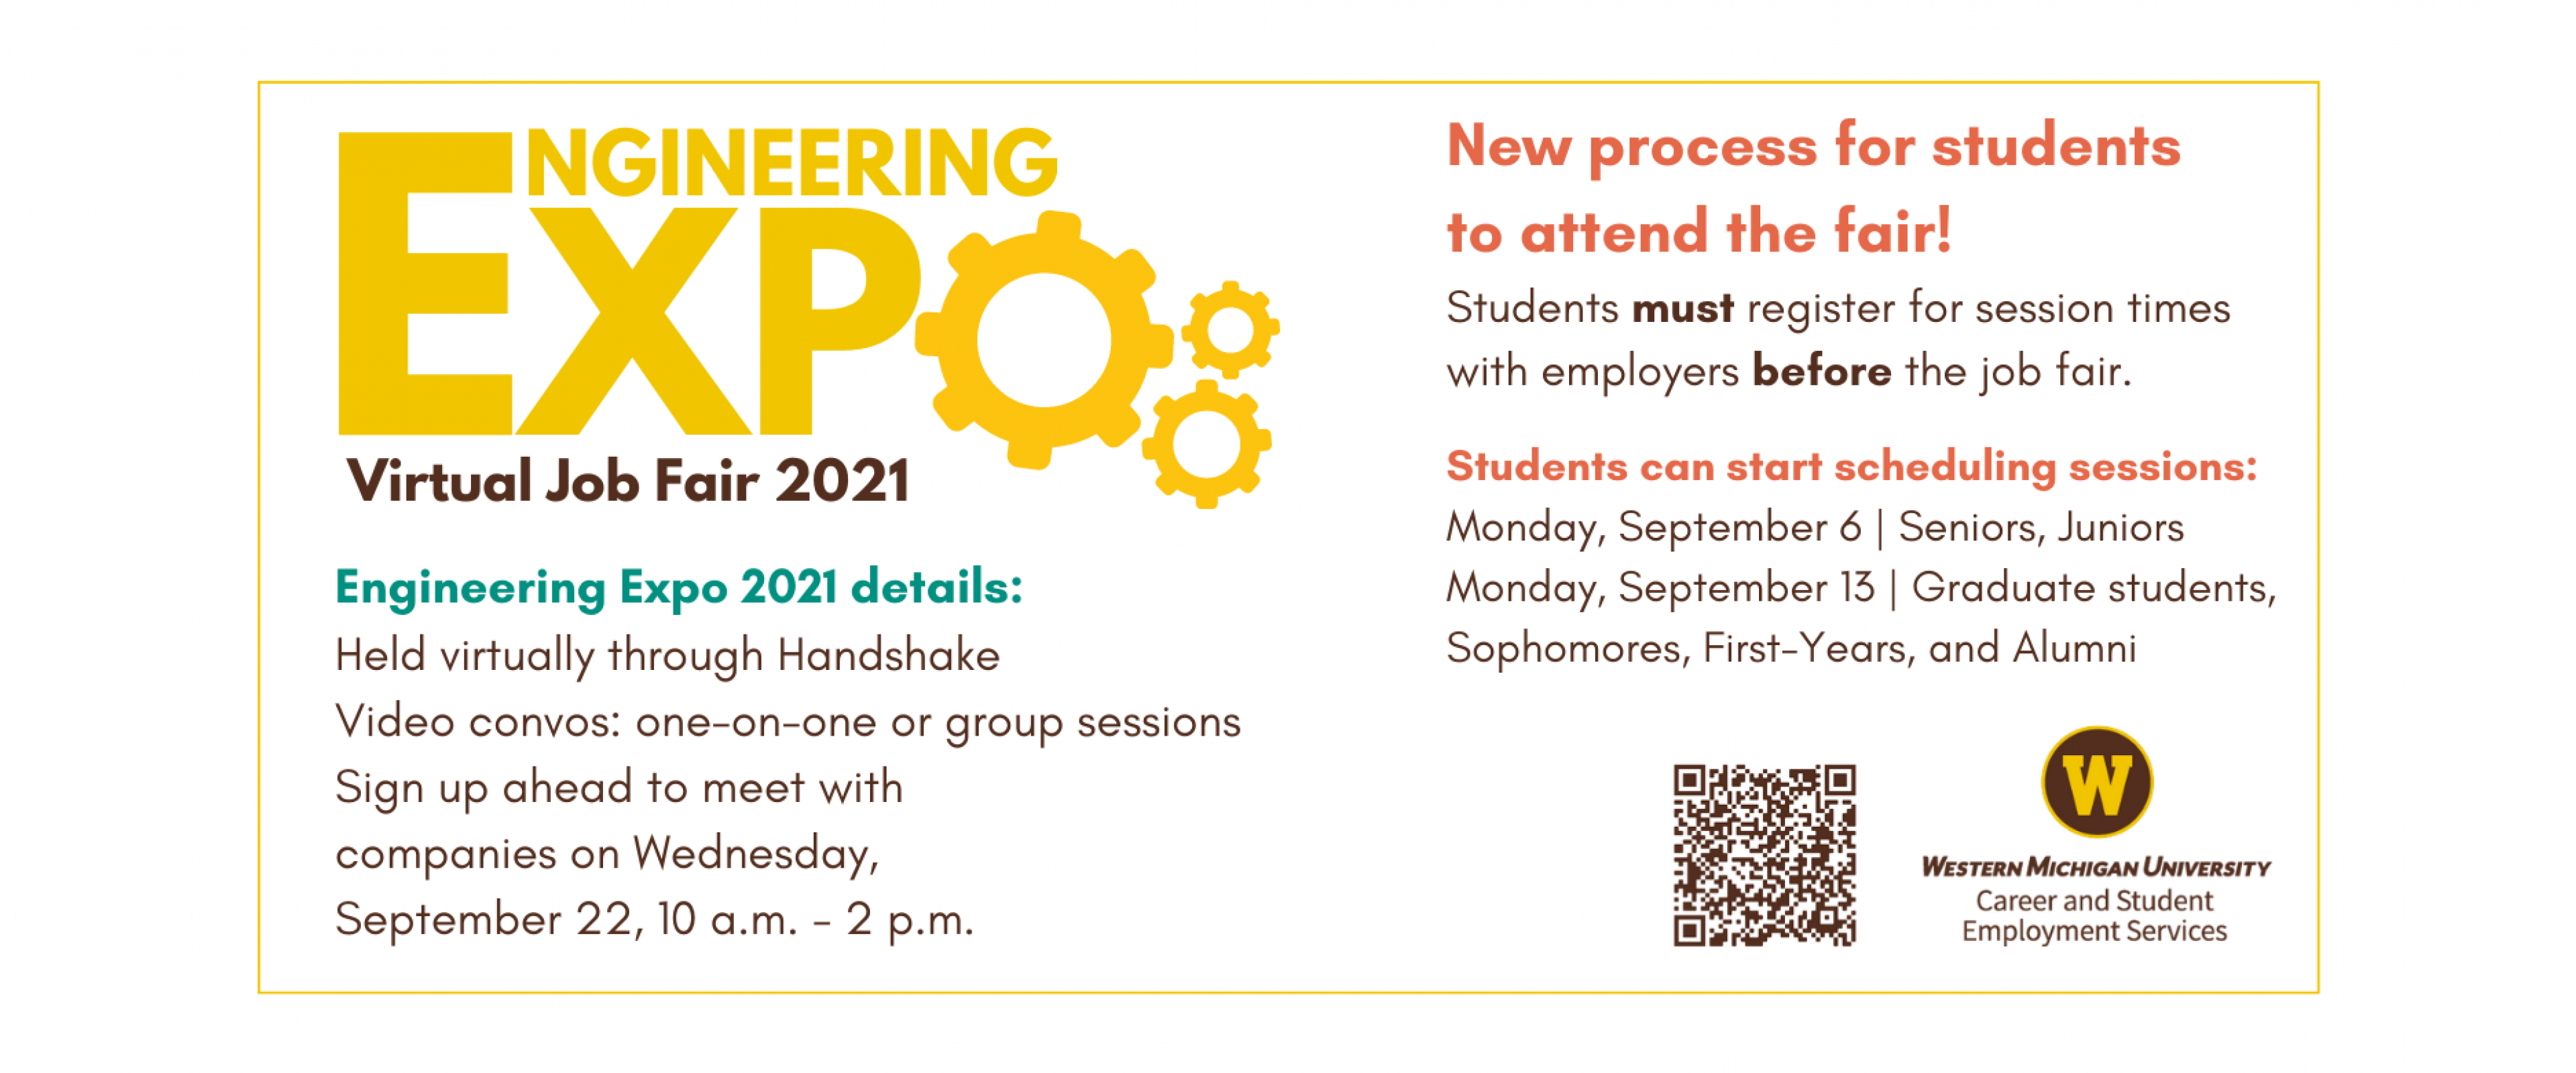 Engineering Expo 2021 Virtual Job Fair. New process for students to attend the fair! Students must register for session times with employers before the job fair. Students can start scheduling sessions on: Monday, September 6 | Seniors, Juniors. Monday, September 13 | Graduate students, sophomores, first-years, and alumni. Engineering Expo 2021 details: 1) held virtually through Handshake, 2) video convos: one-on-one or group sessions, 3) Wednesday, September 22, 10 a.m. to 2 p.m., 4) Sign up ahead of time